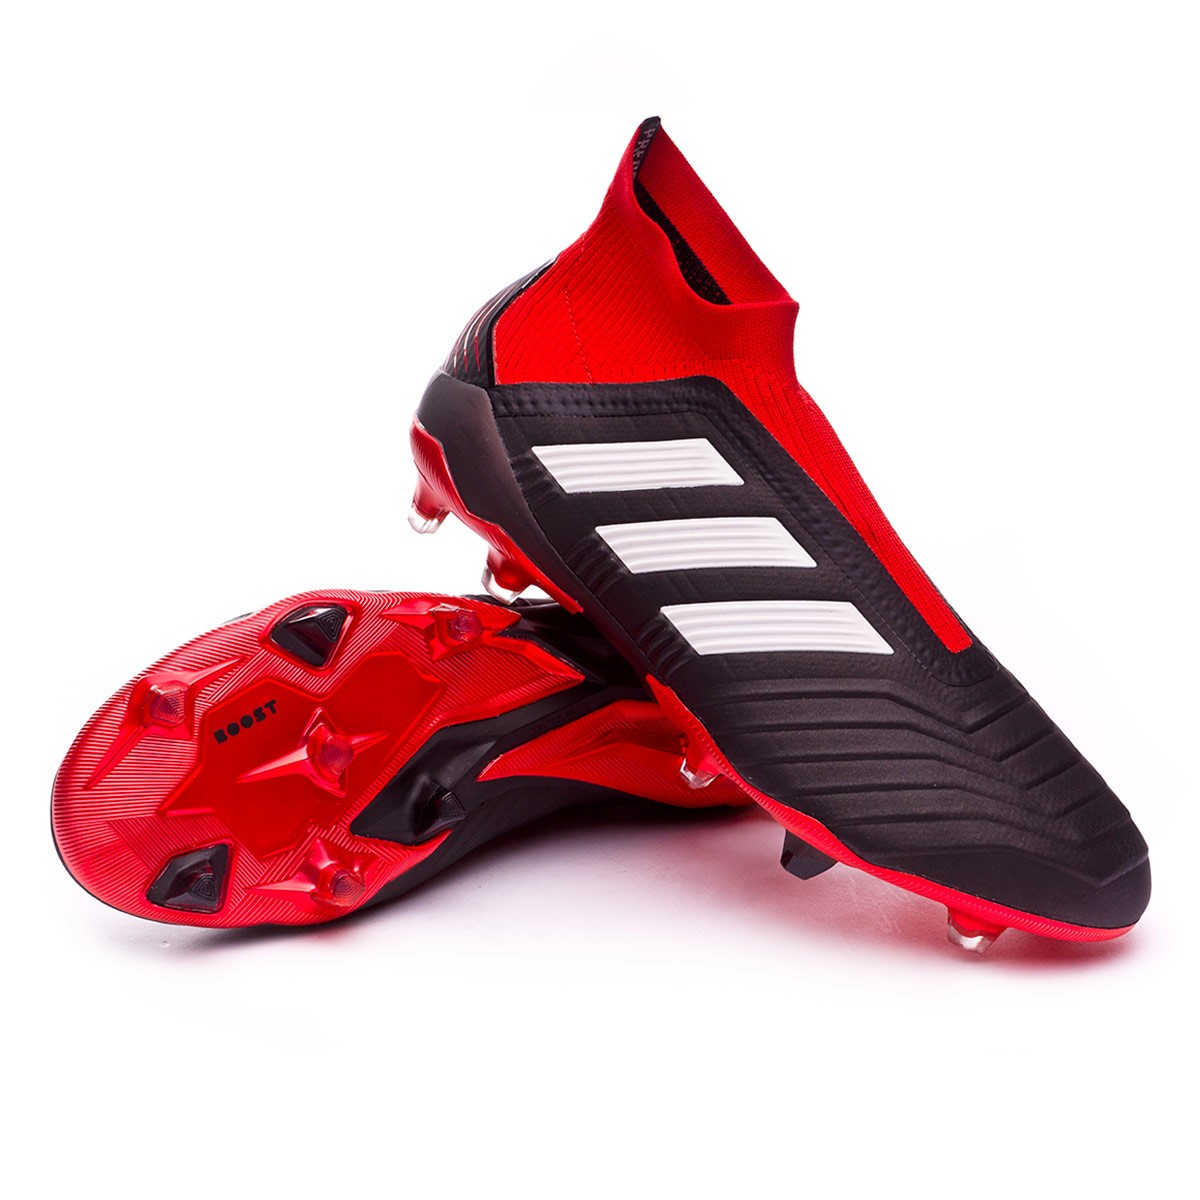 8674d4ae86ce Football Boots adidas Predator 18+ FG Core black-White-Red - Tienda ...